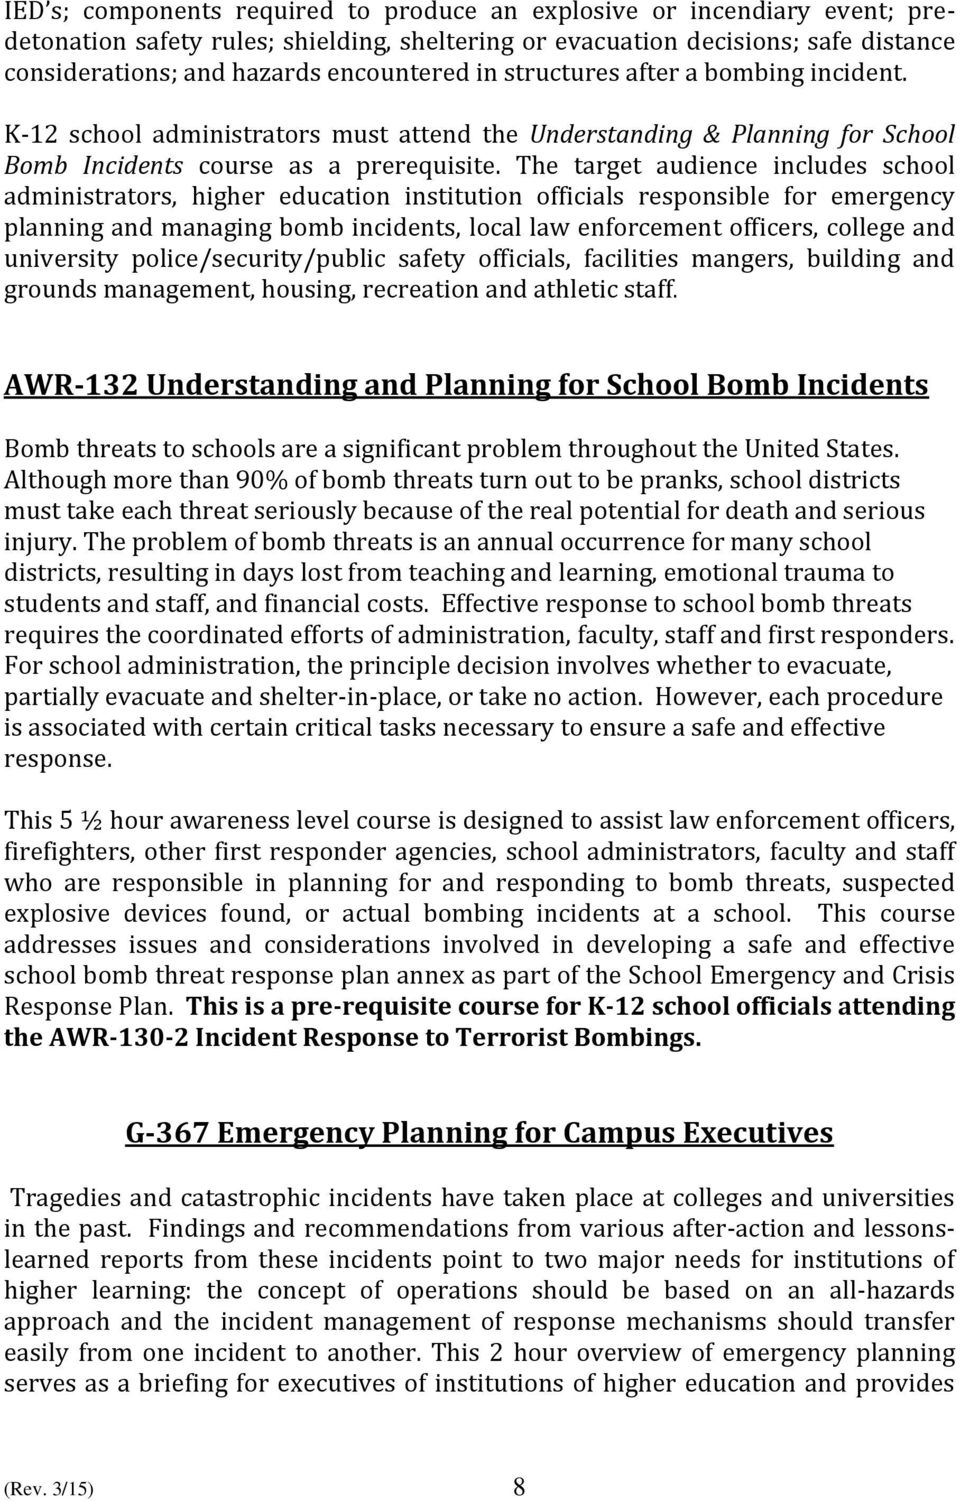 The target audience includes school administrators, higher education institution officials responsible for emergency planning and managing bomb incidents, local law enforcement officers, college and